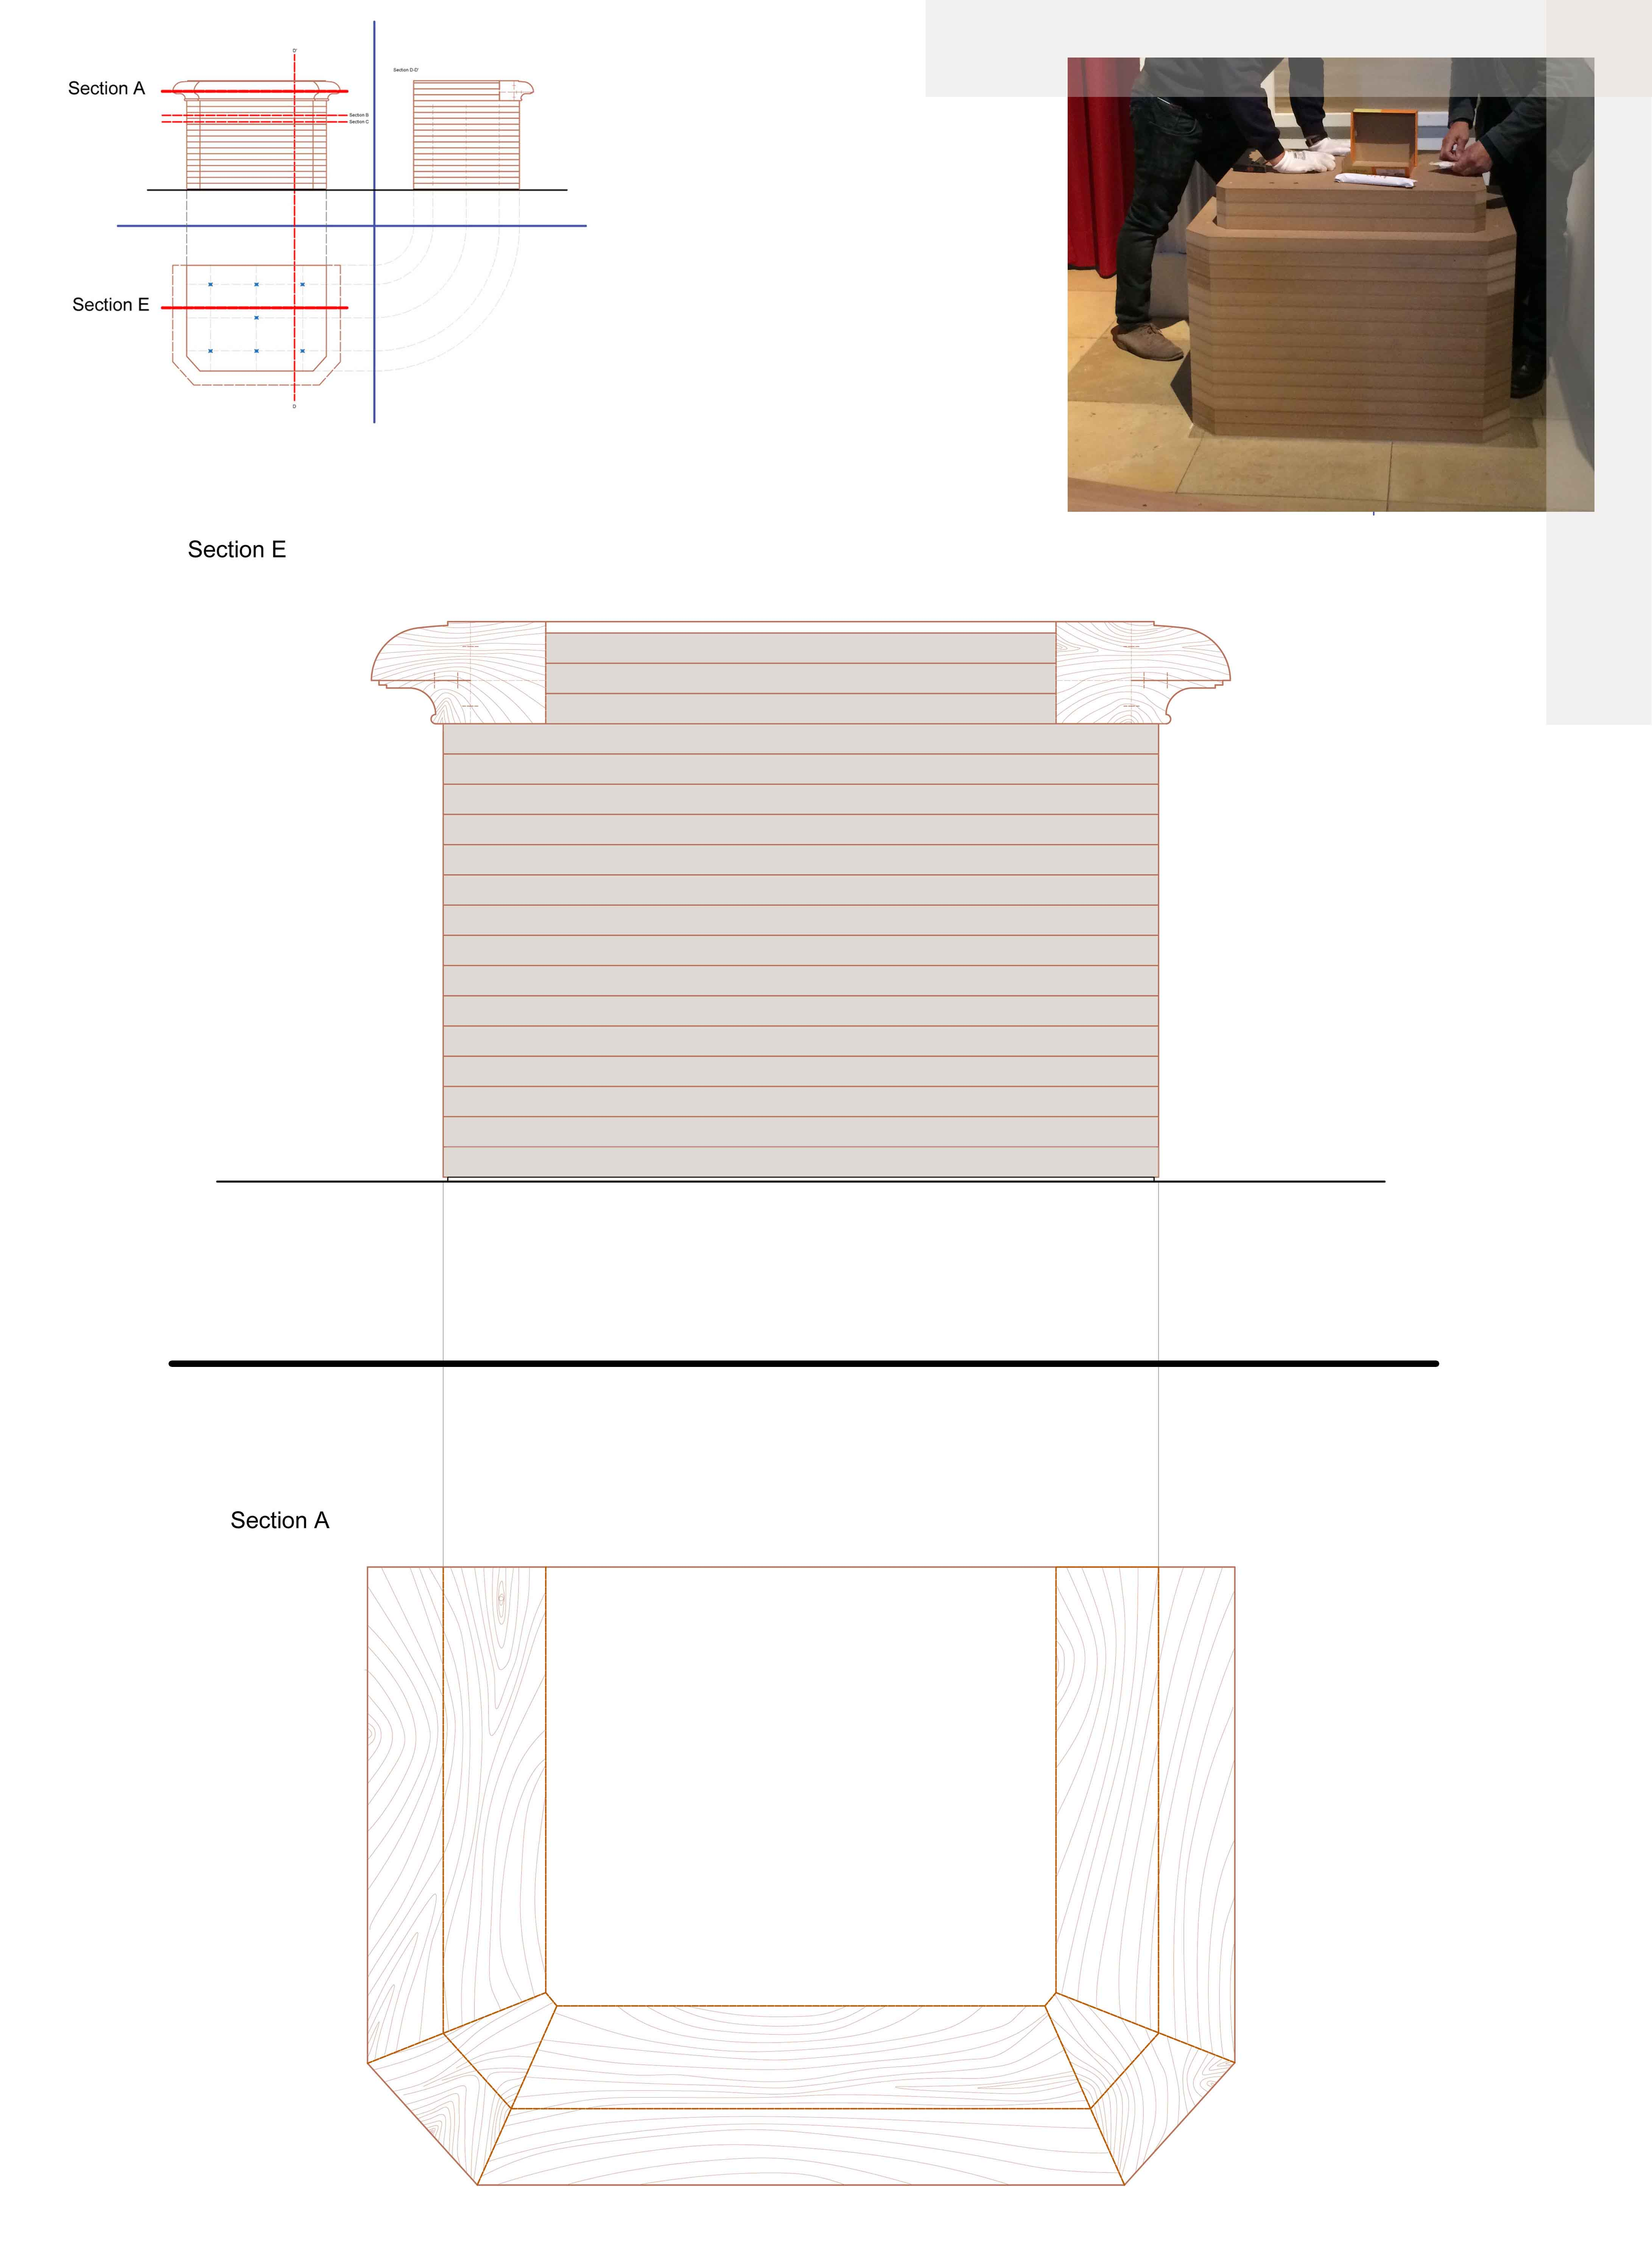 Design for the base supporting the sculptures, and a picture showing timber ballast elements piled up to stabilize structures. Plates are set upon a layer of propylene to avoid degradation. Fonti}